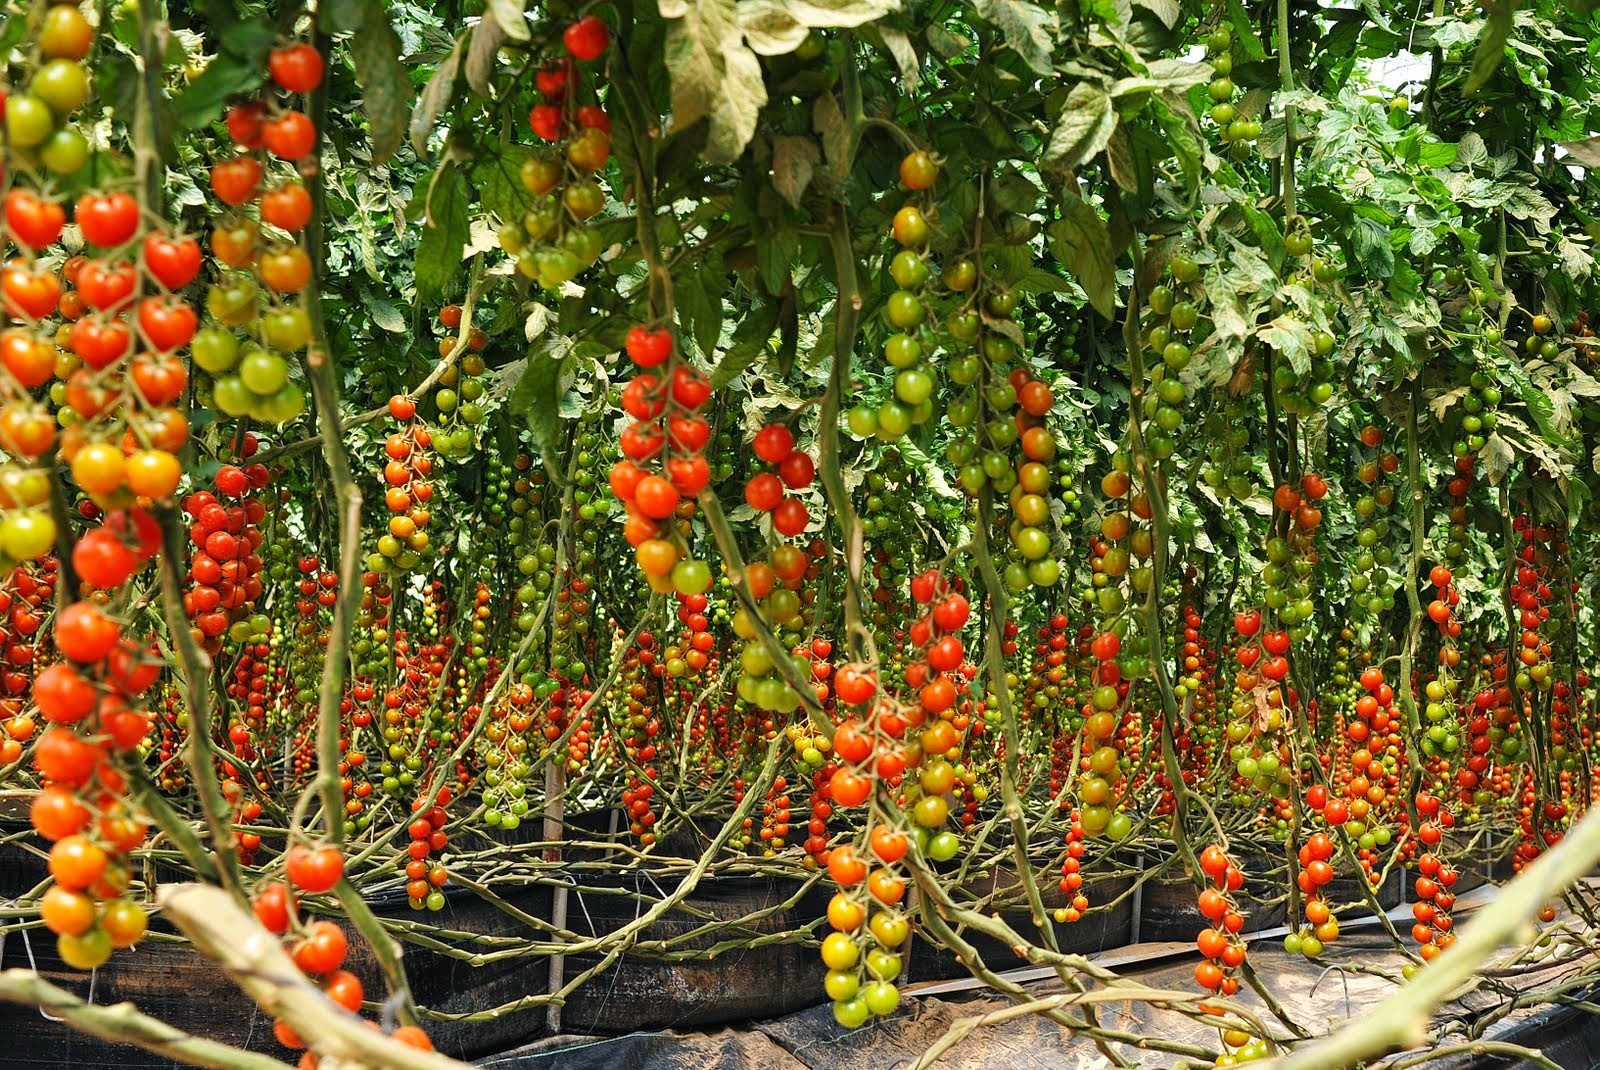 5 Simple Steps On How To Grow Tomatoes At Home